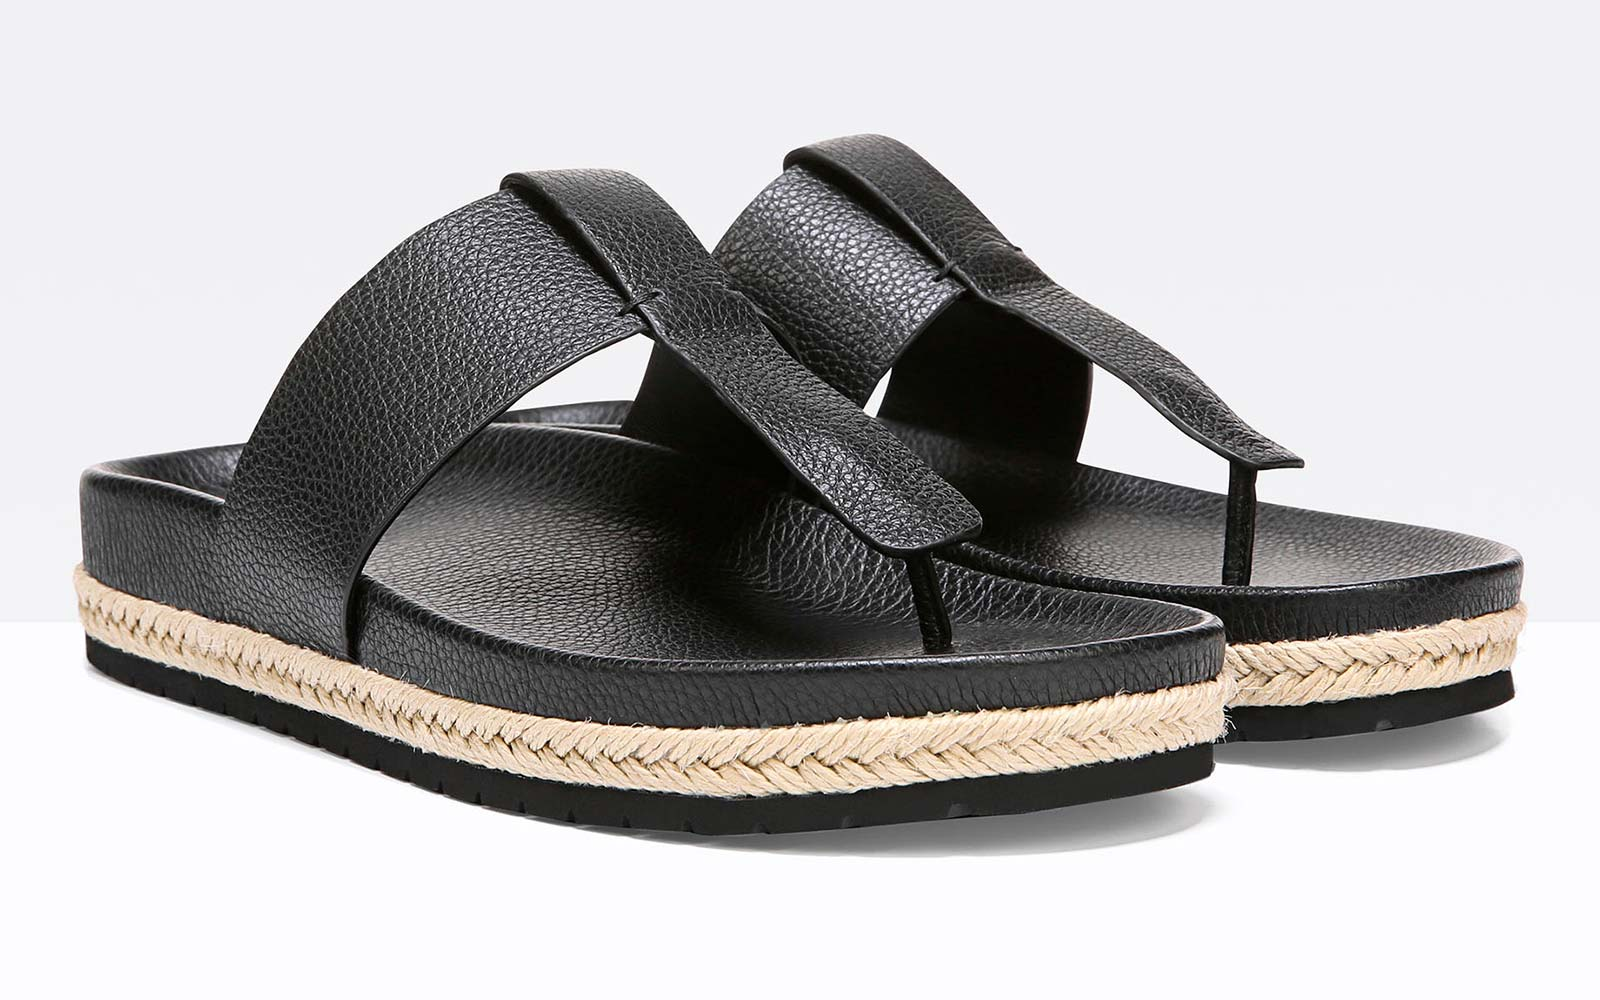 Vince Beach Capsule Collection Fashion Avani Leather Sandals